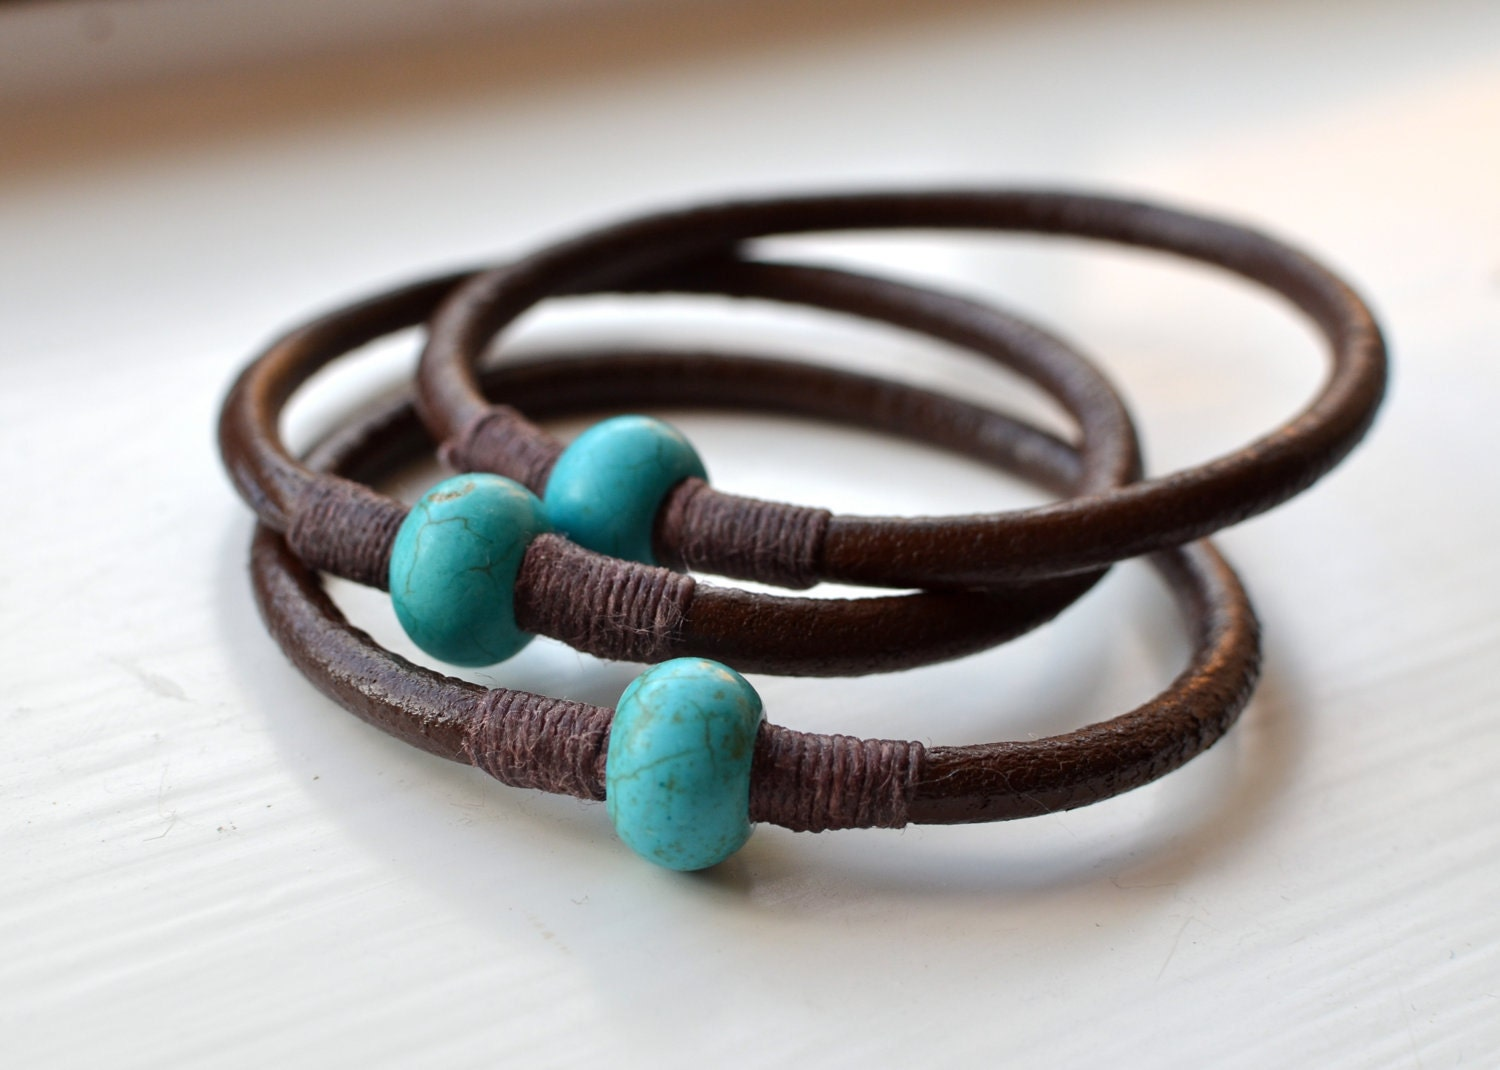 Turquoise and Chocolate Brown Leather Bangles - VerdantDesigns